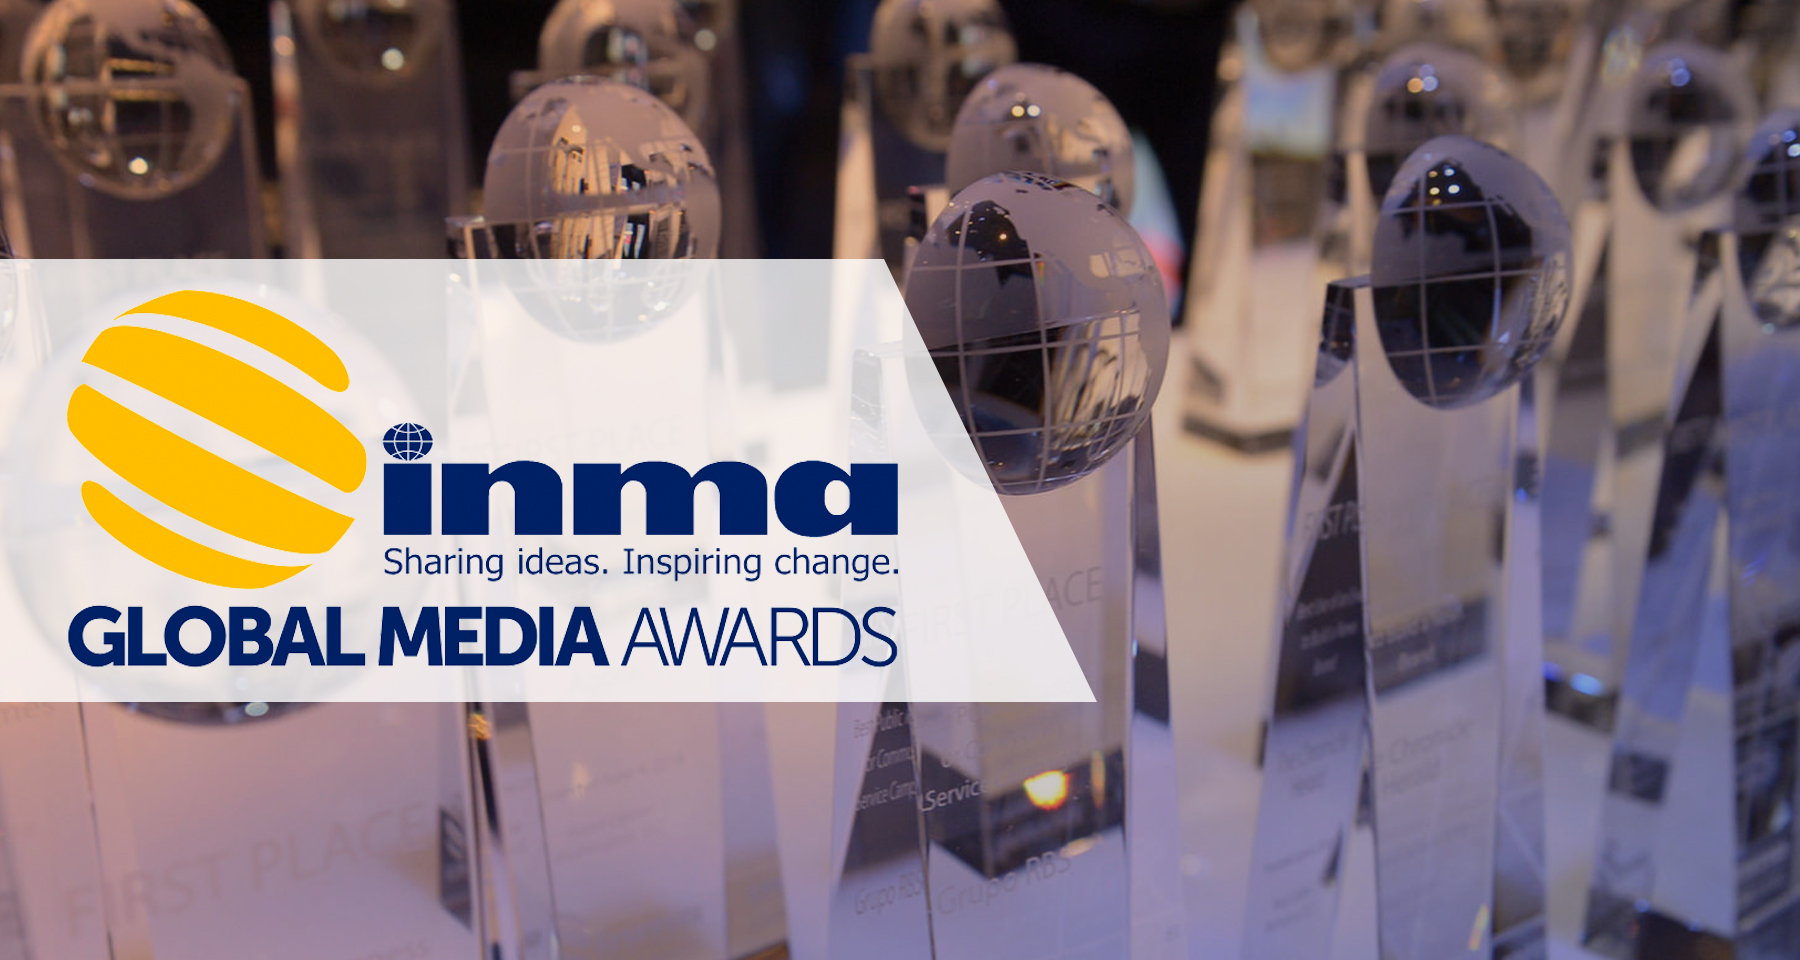 Deadine is Friday for INMA Global Media Awards